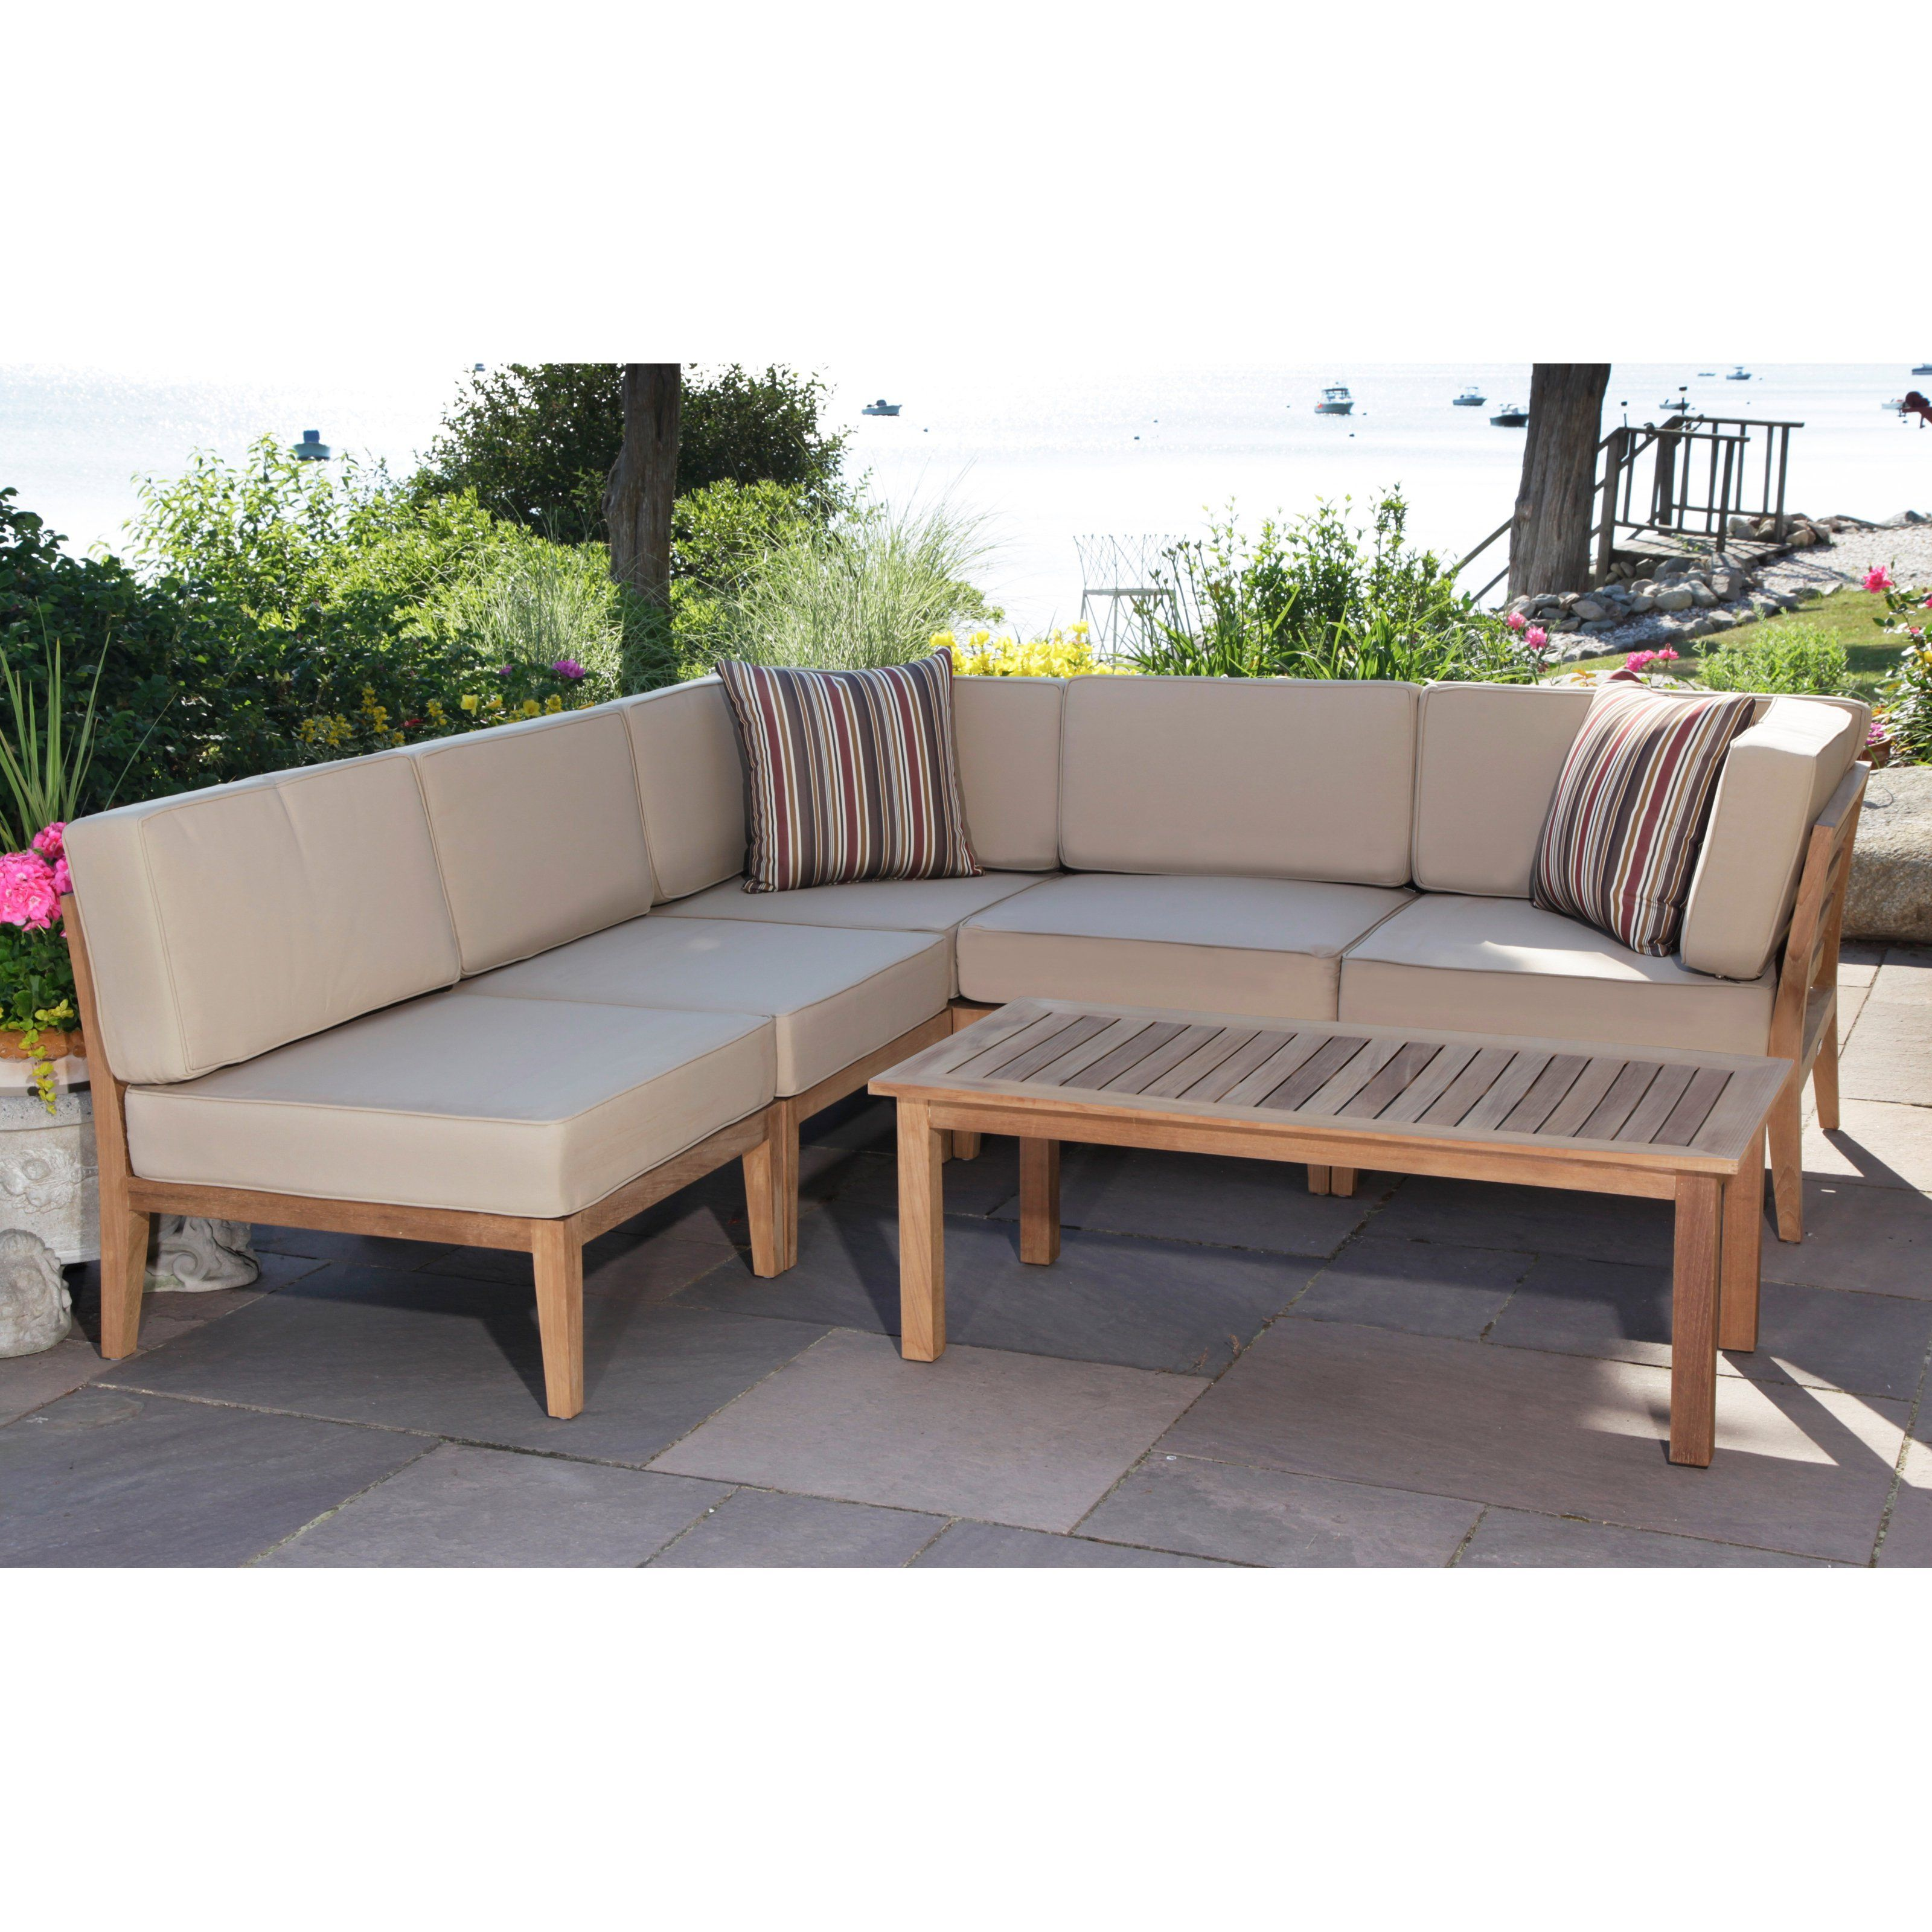 Miraculous Outdoor Madbury Road Bali Teak Quick Drying 7 Piece Patio Alphanode Cool Chair Designs And Ideas Alphanodeonline